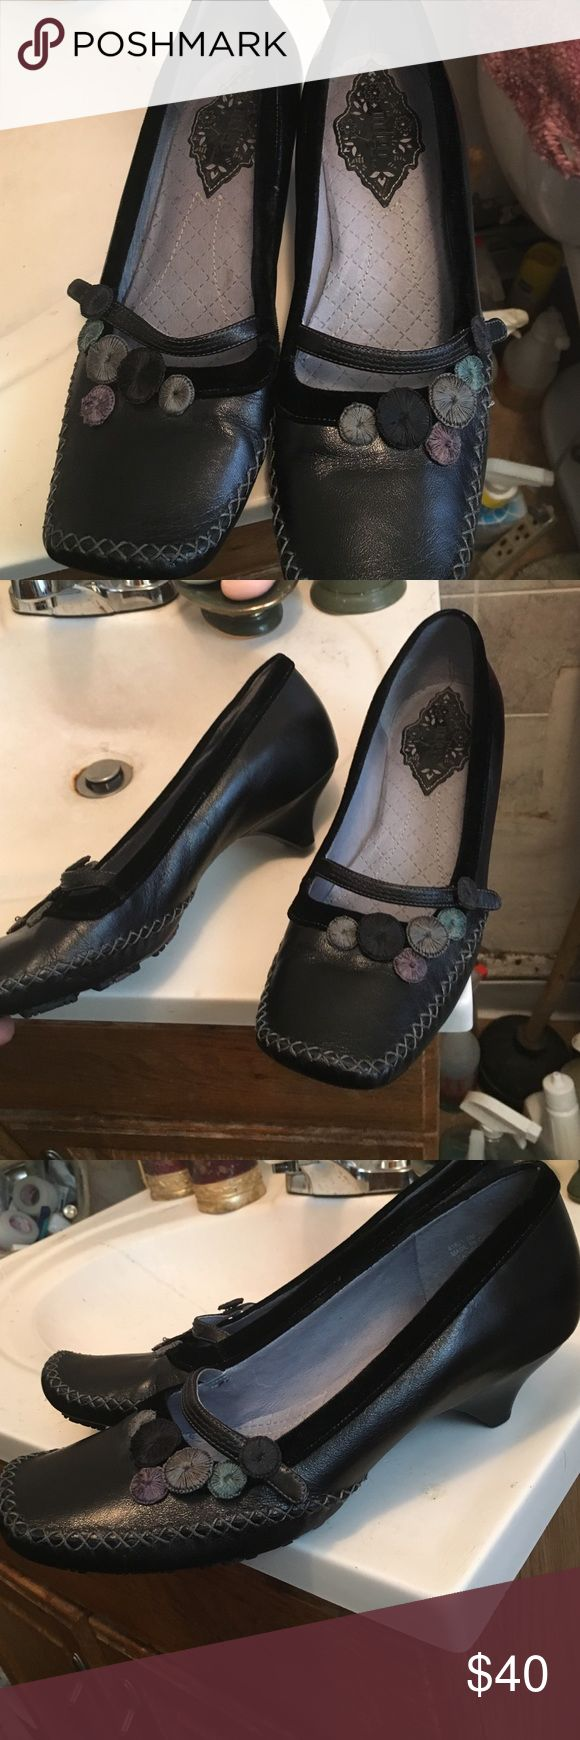 Indigo shoes They are pre owned in great condition!! Indigo by Clarks Shoes Flats & Loafers